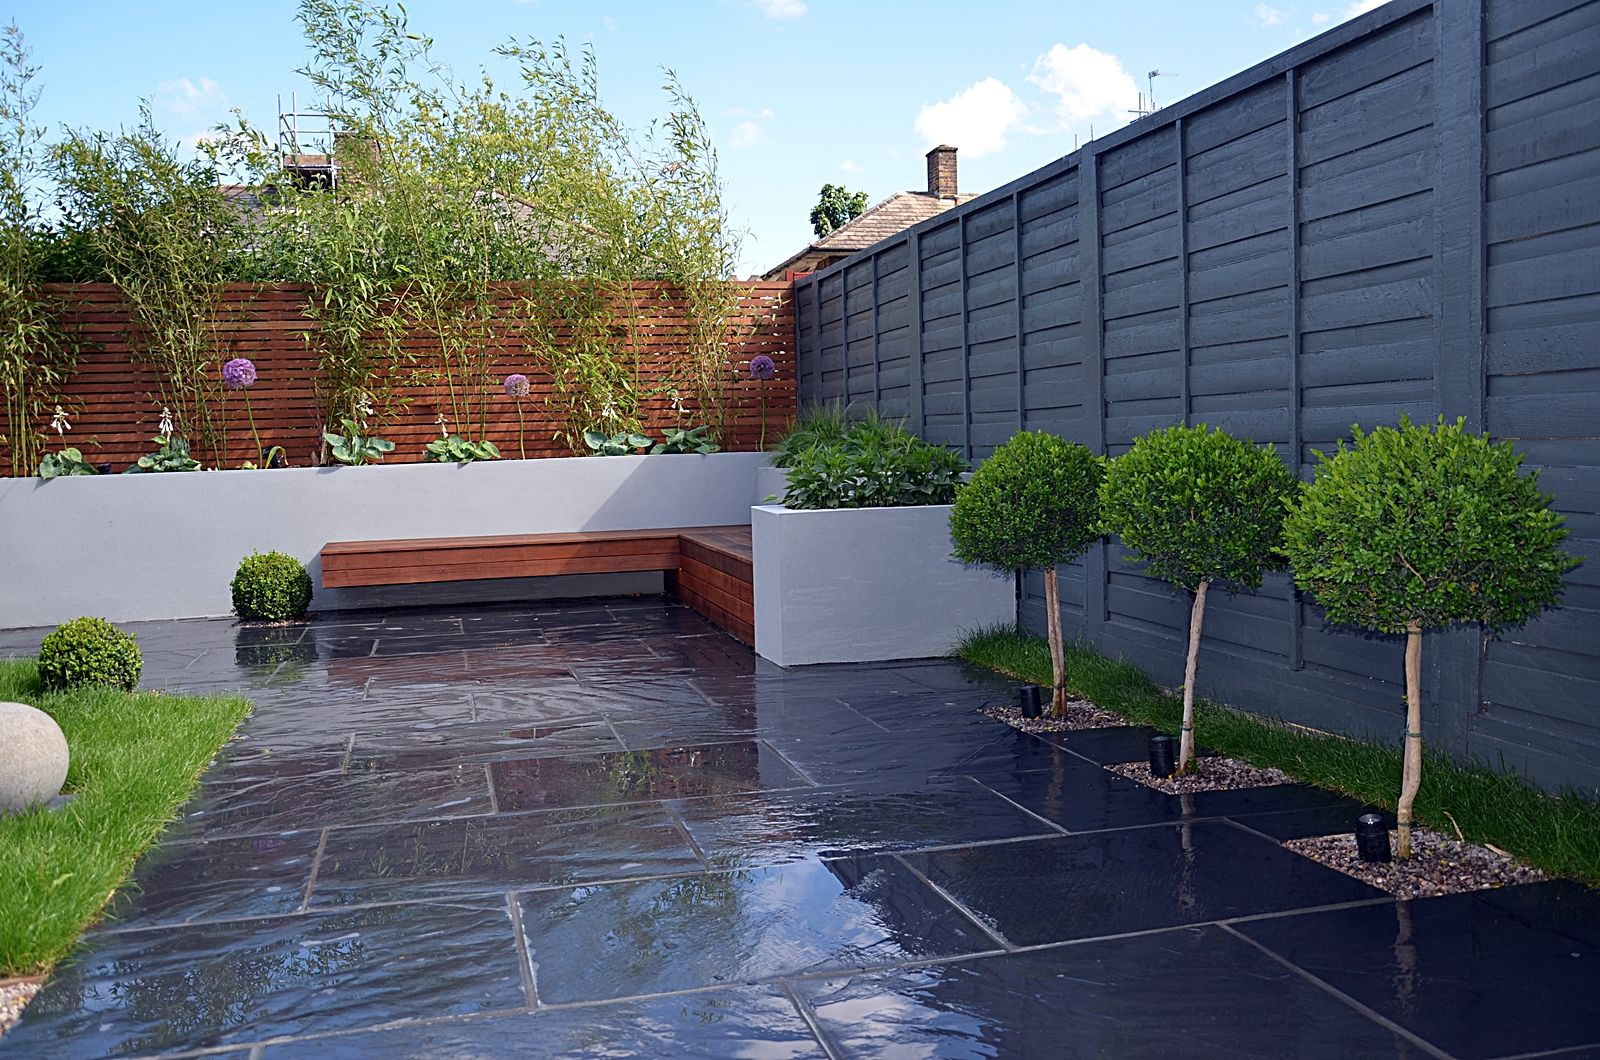 To Check Out More Images From MPF Garden Company Check Out Our - Contemporary garden ideas uk